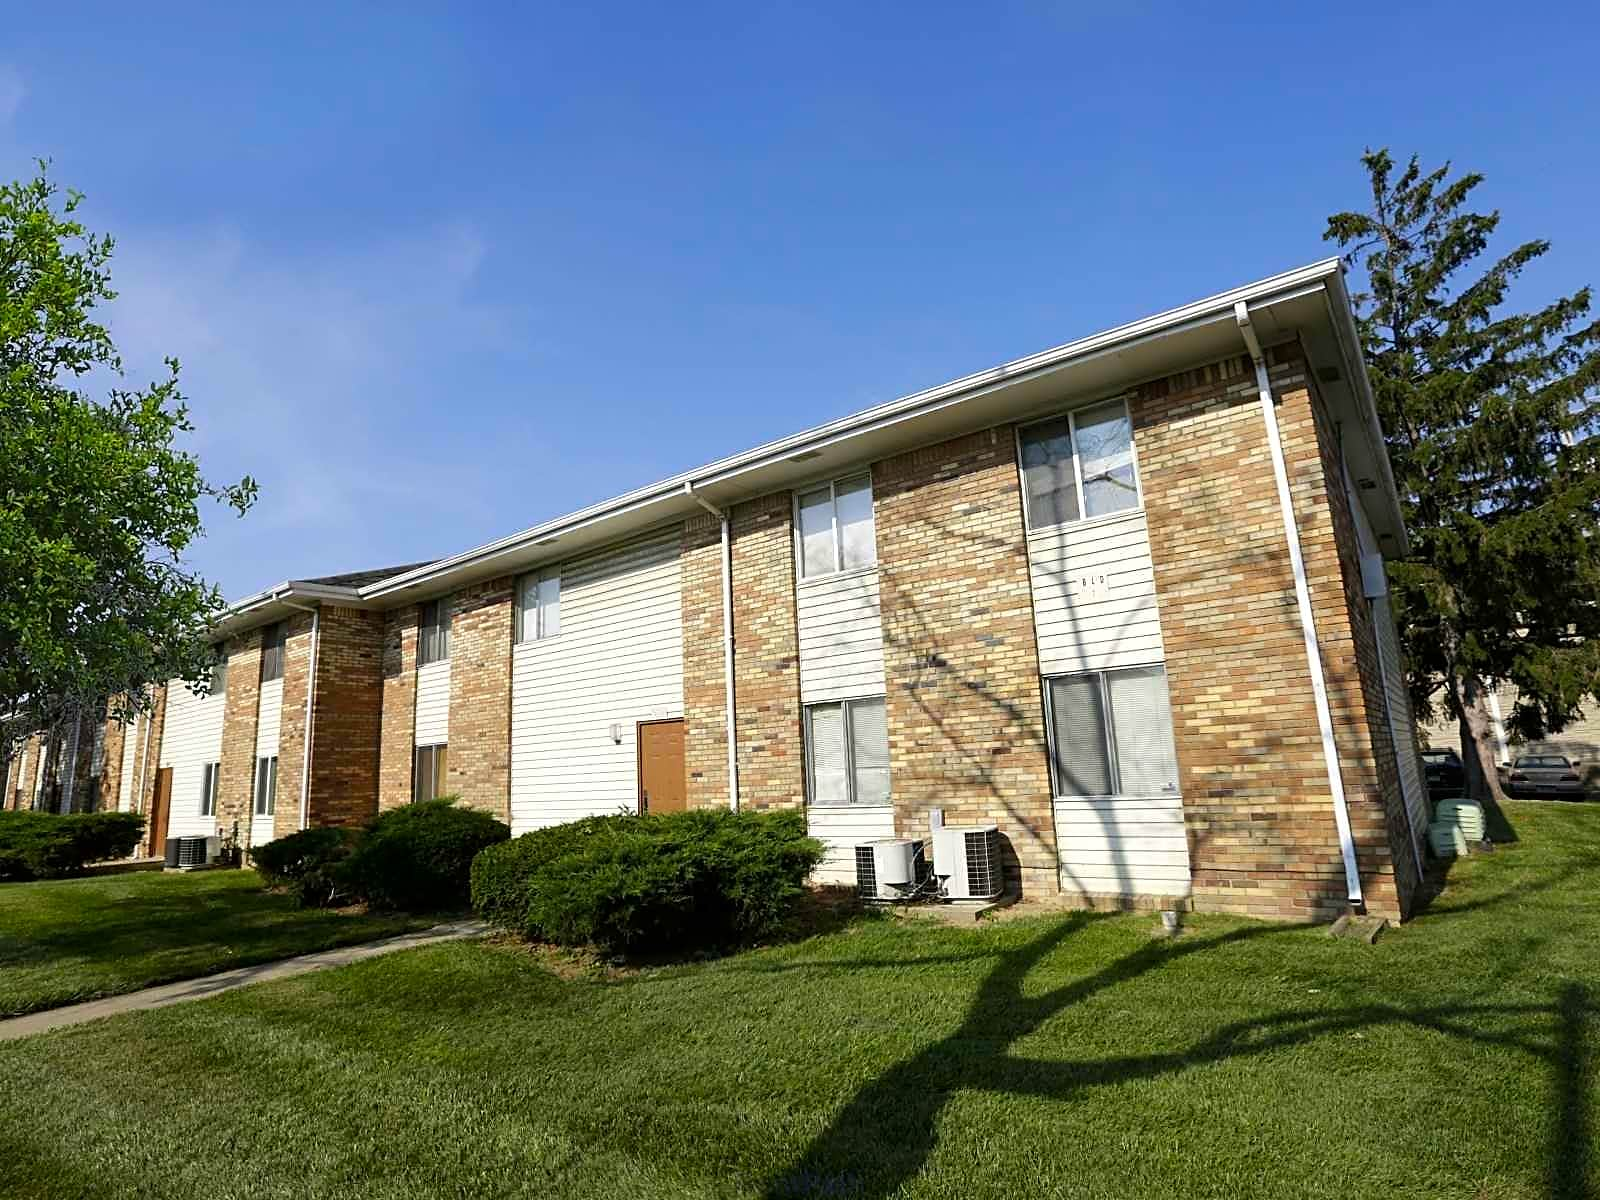 Photo: Indianapolis Apartment for Rent - $492.00 / month; 2 Bd & 1 Ba